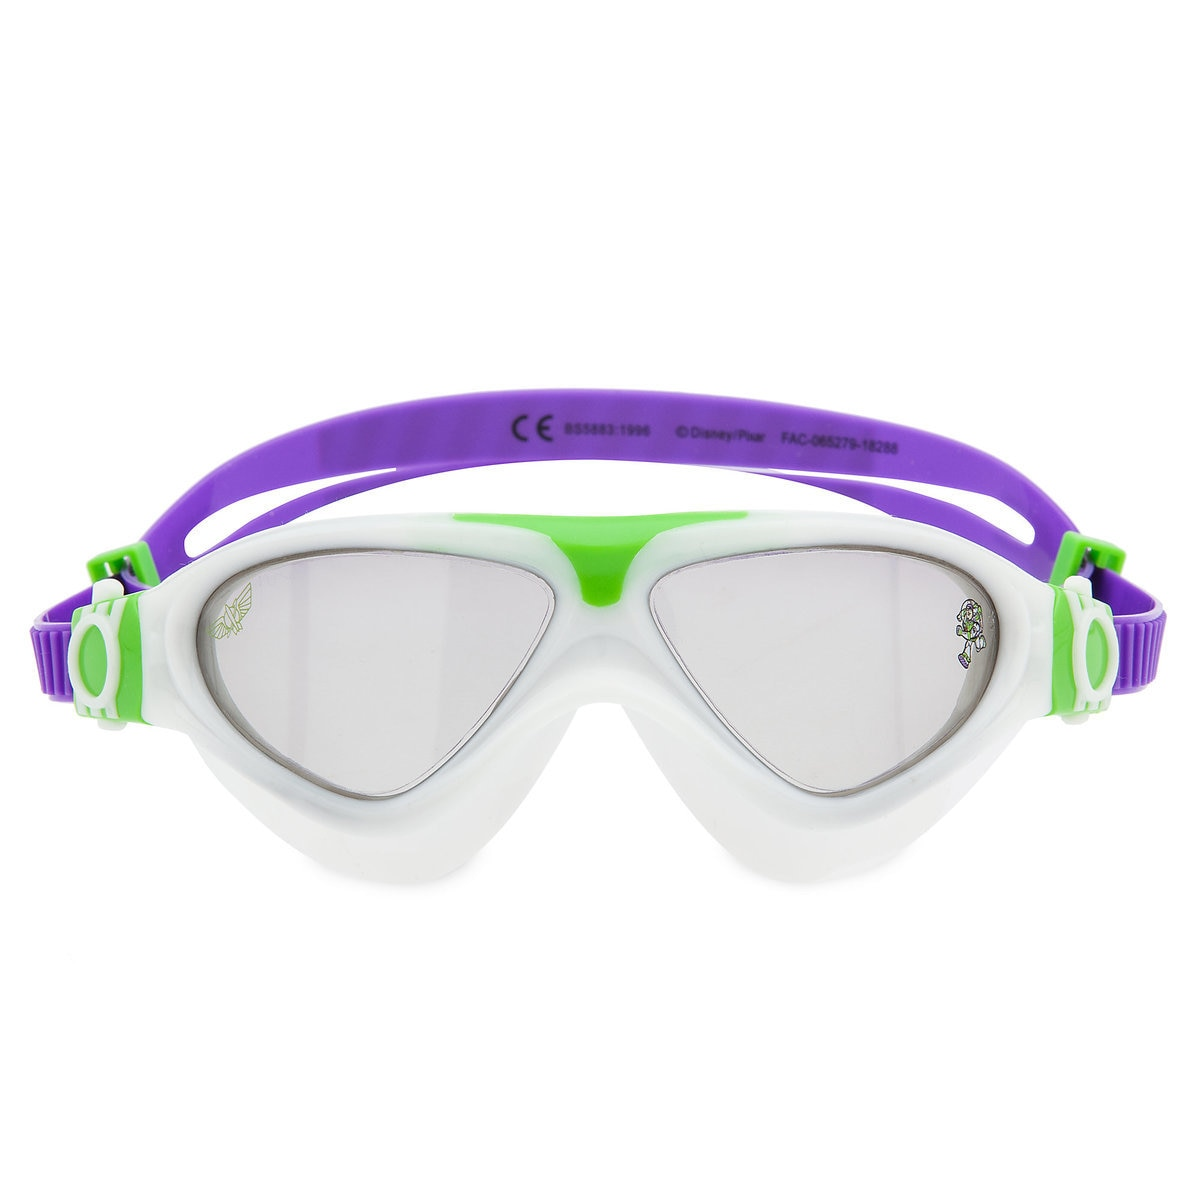 00a7751bc1b Product Image of Buzz Lightyear Swim Goggles for Kids   1